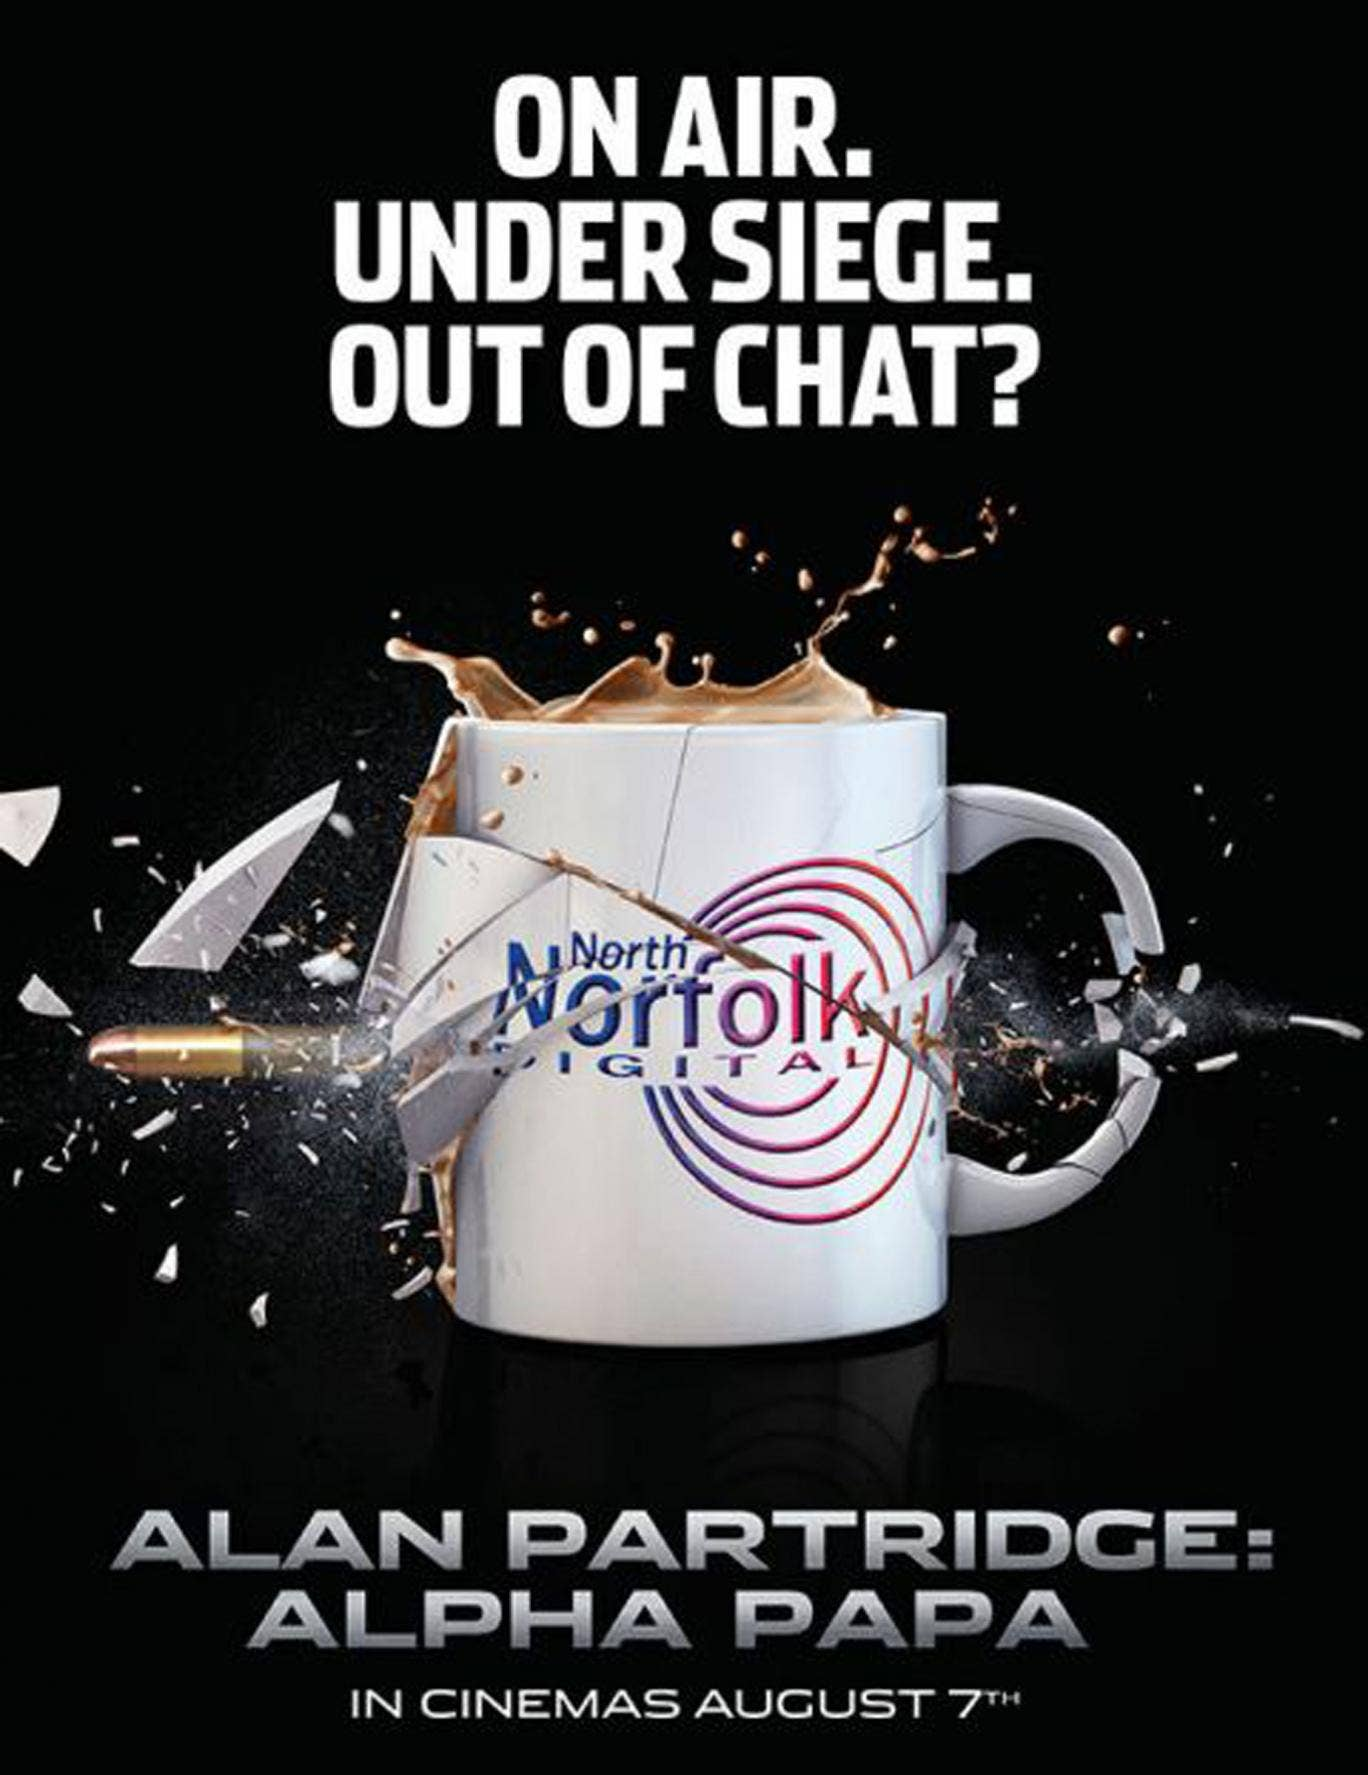 The poster for Alan Partridge: Alpha Papa